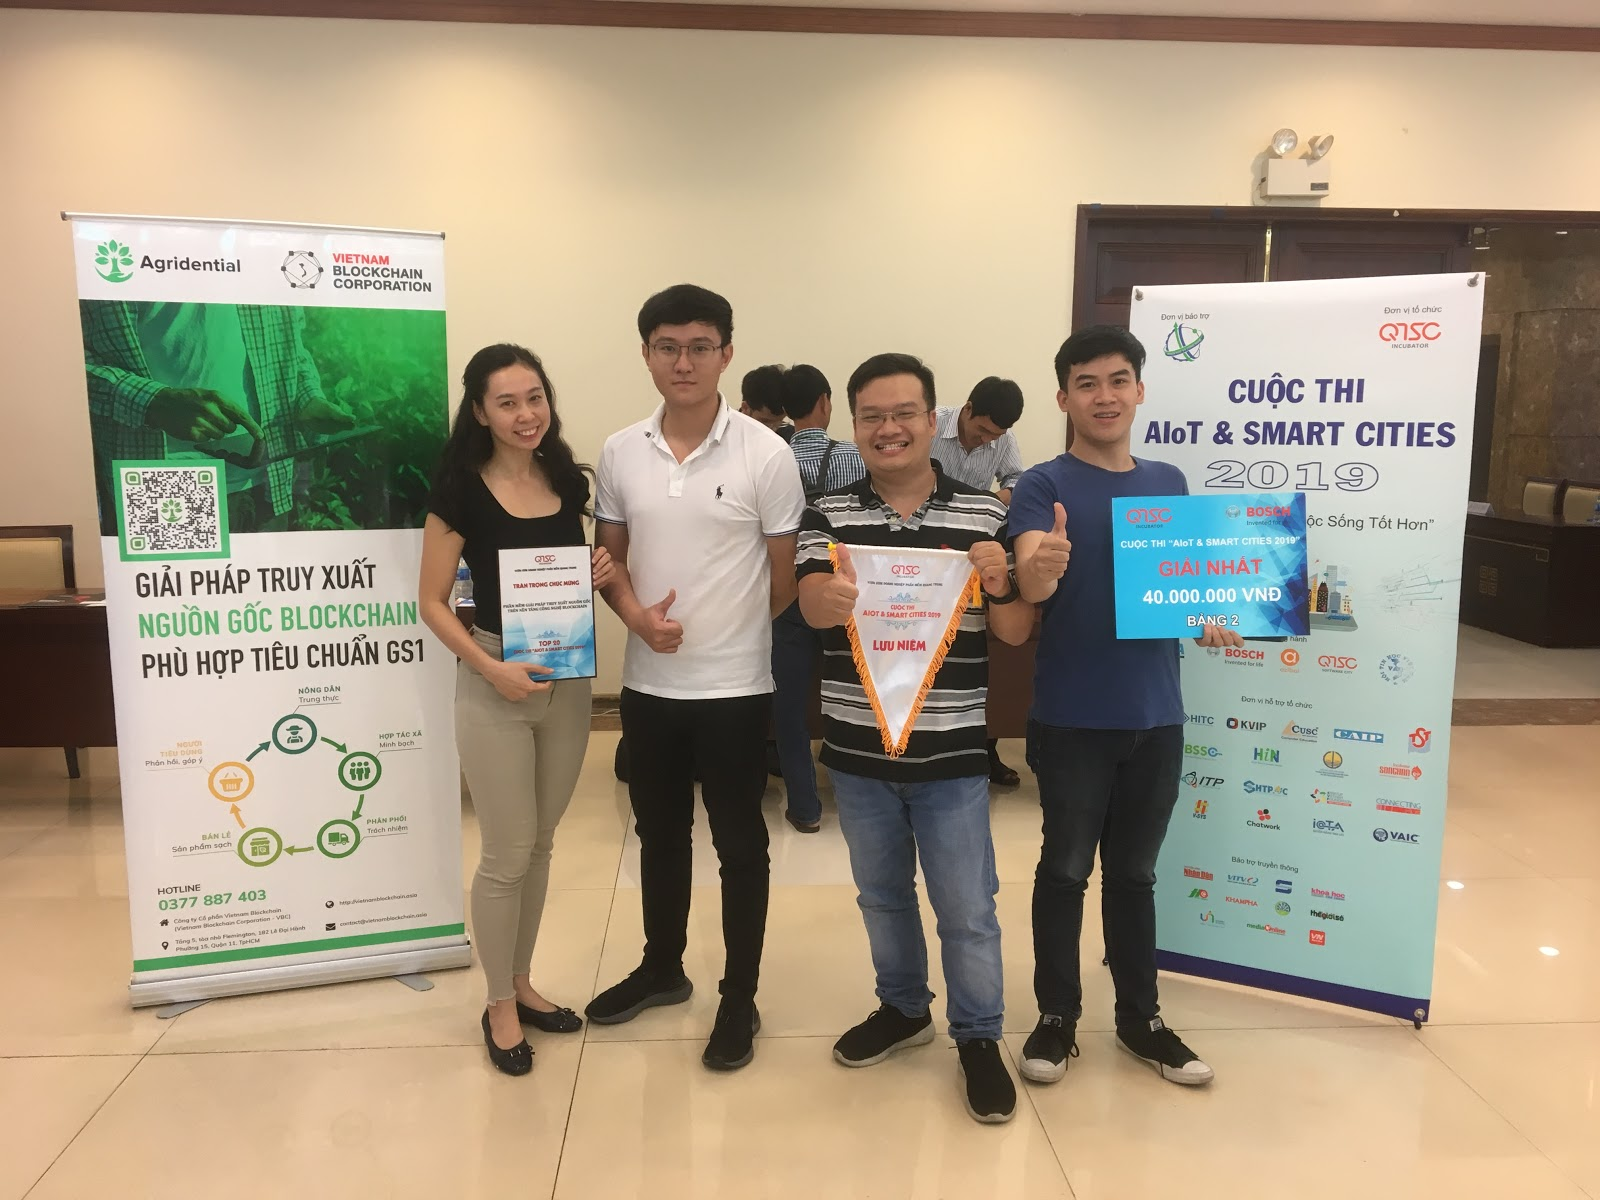 VBC honored with the first prize of High-Tech Agriculture group in AIoT & Smart Cities contest 2019